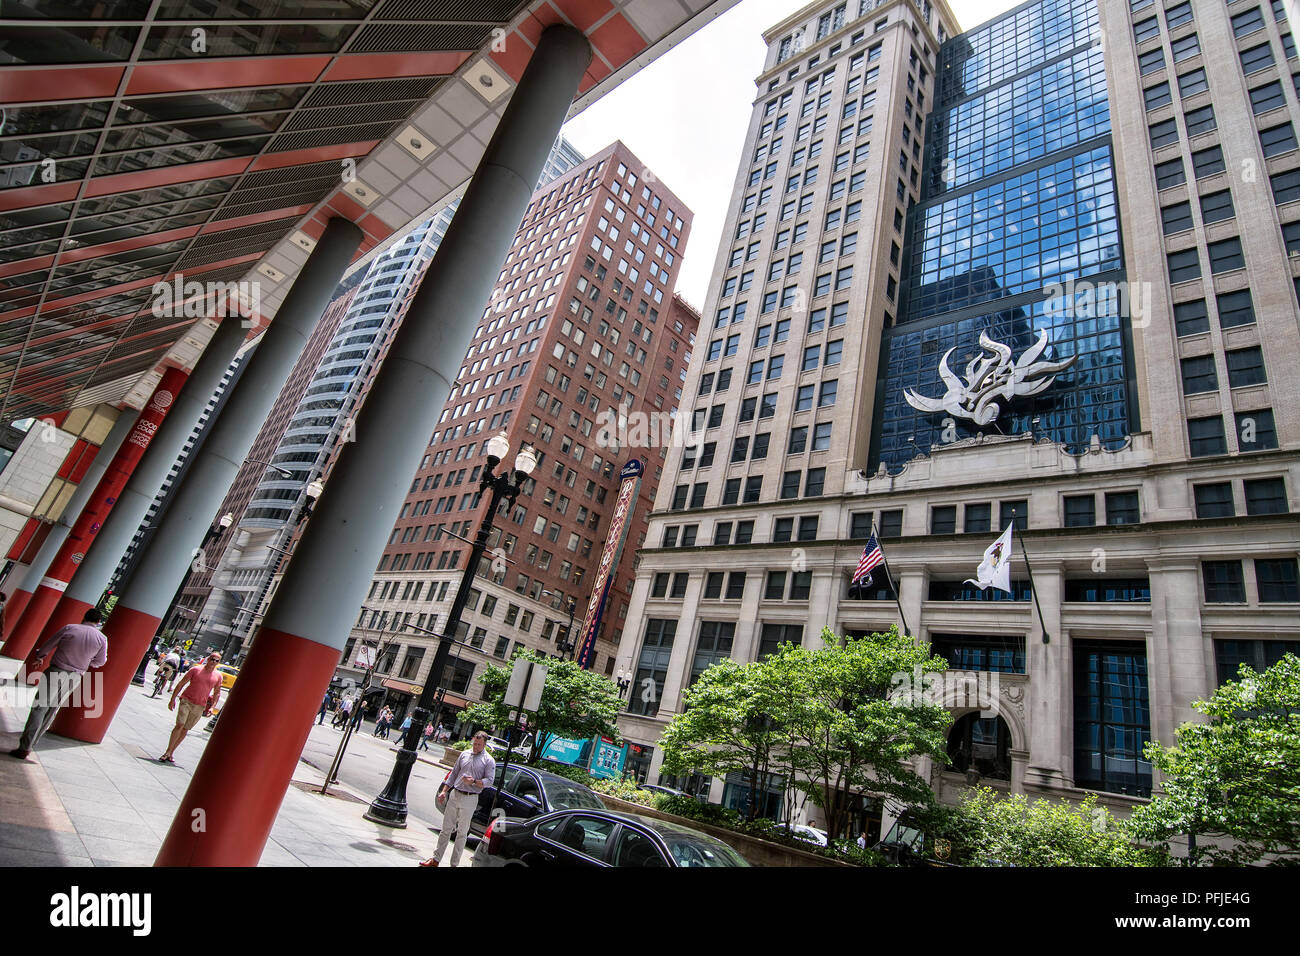 Llinois Department of Labor, Downtown Chicago, North LaSalle Blvd, Cadillac Palace Theatre. Immagini Stock